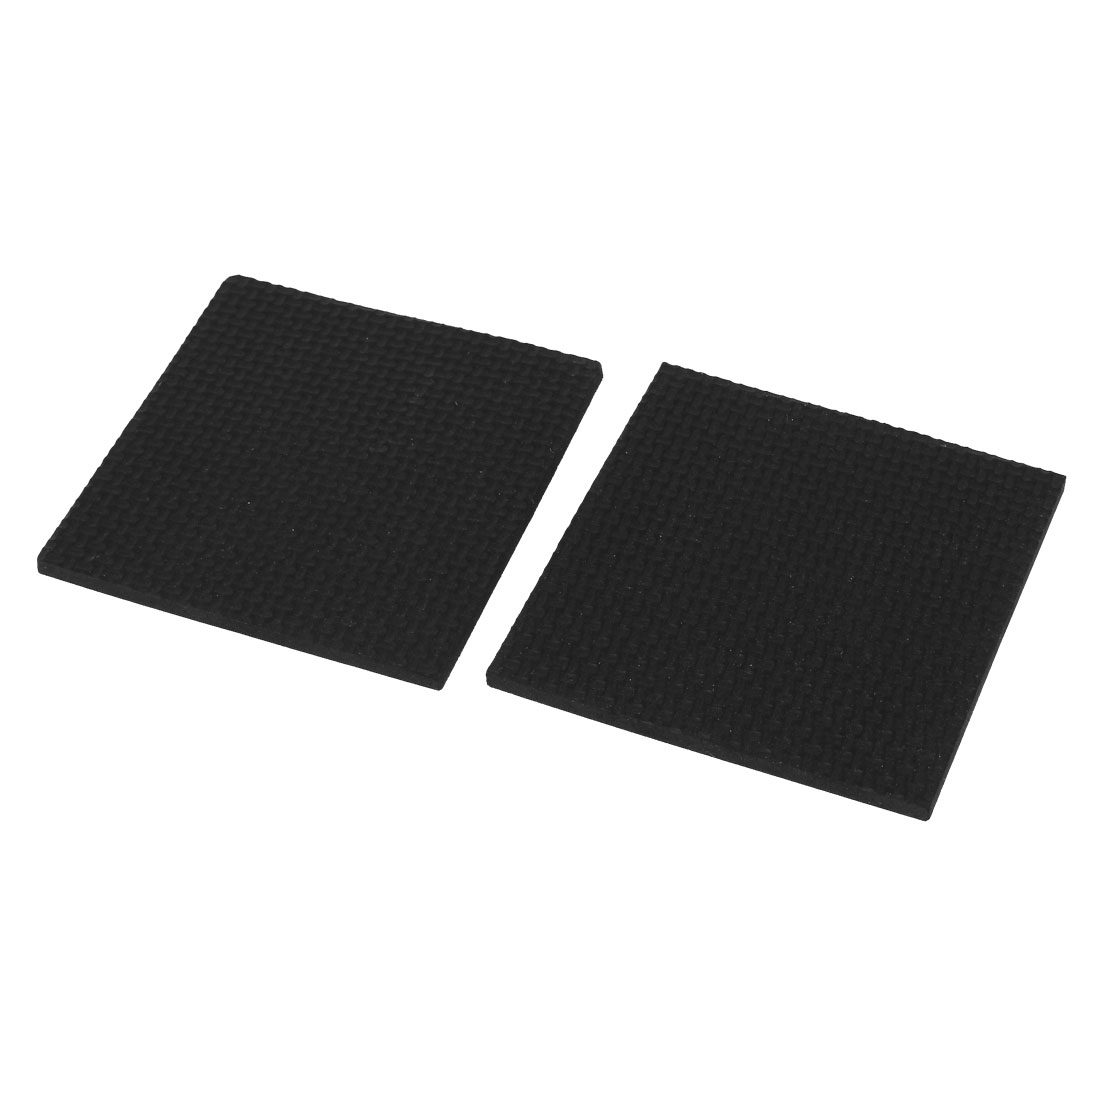 Chair Furniture Leg Floor Protection Self Adhesive Square Cushion Pad 8.5cm 2pcs